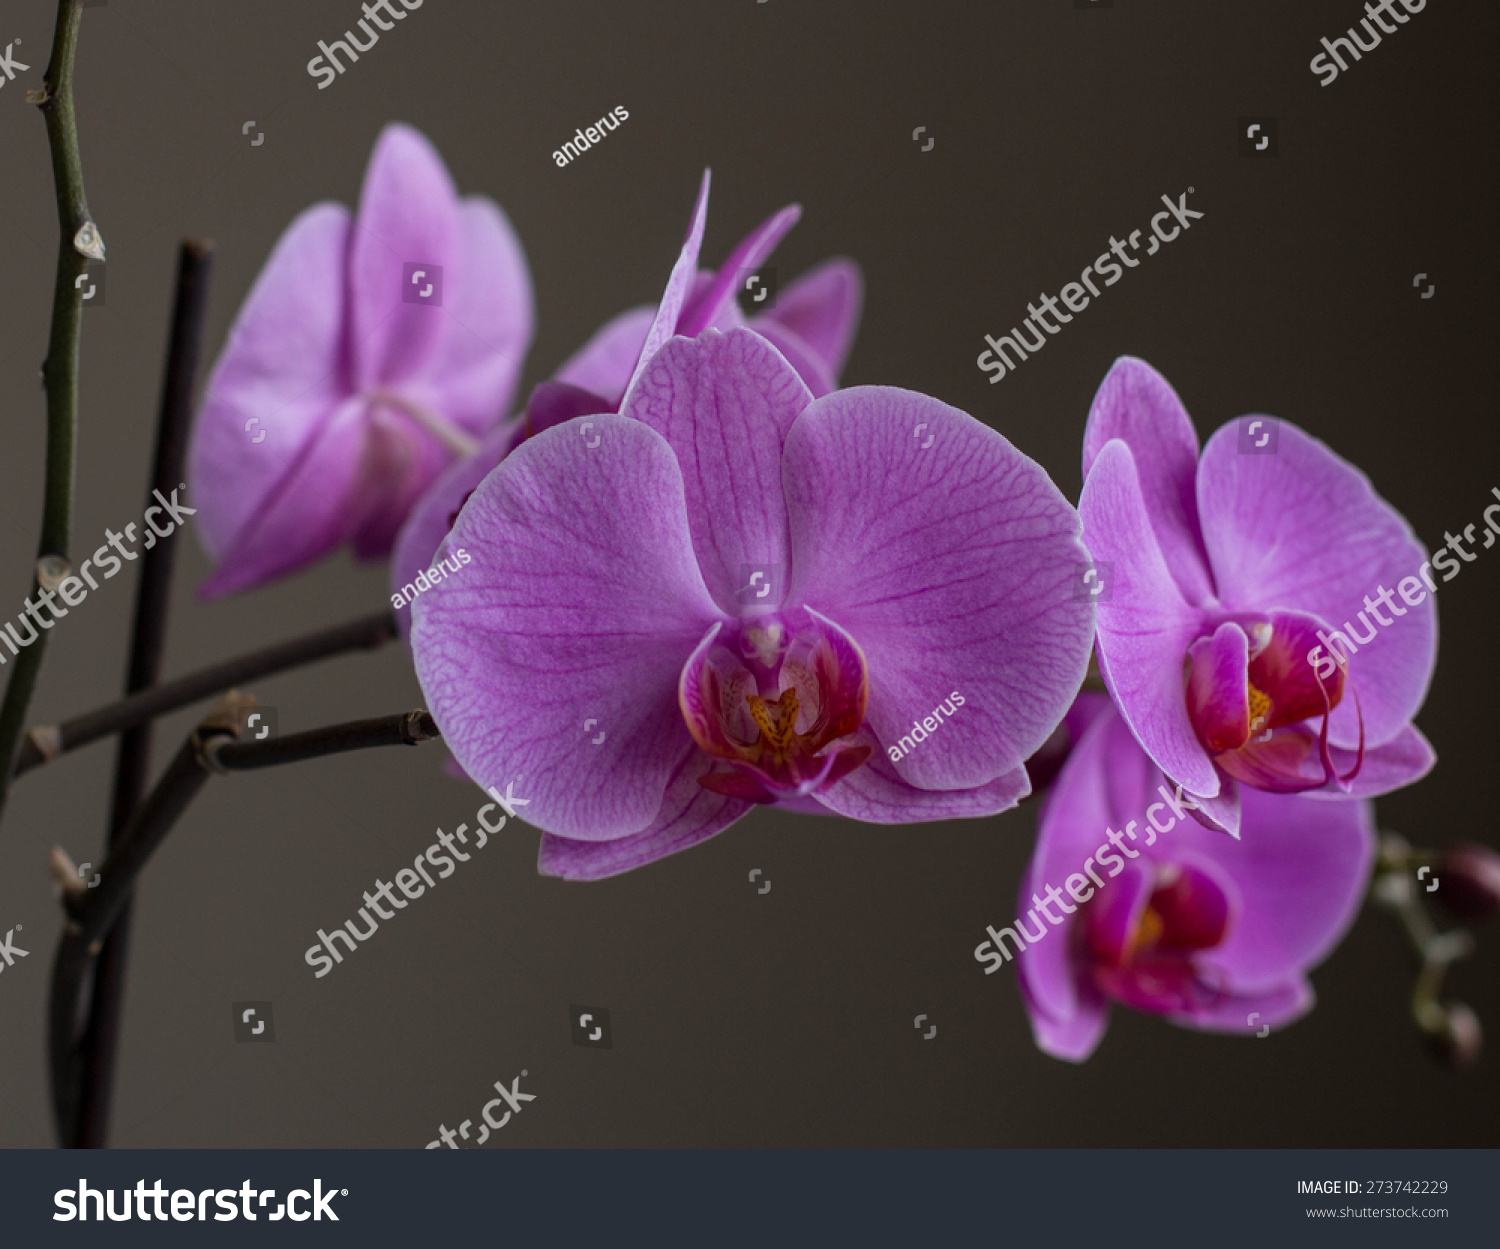 Beautiful flowers blooming orchid closeup stock photo 273742229 beautiful flowers blooming orchid closeup izmirmasajfo Images